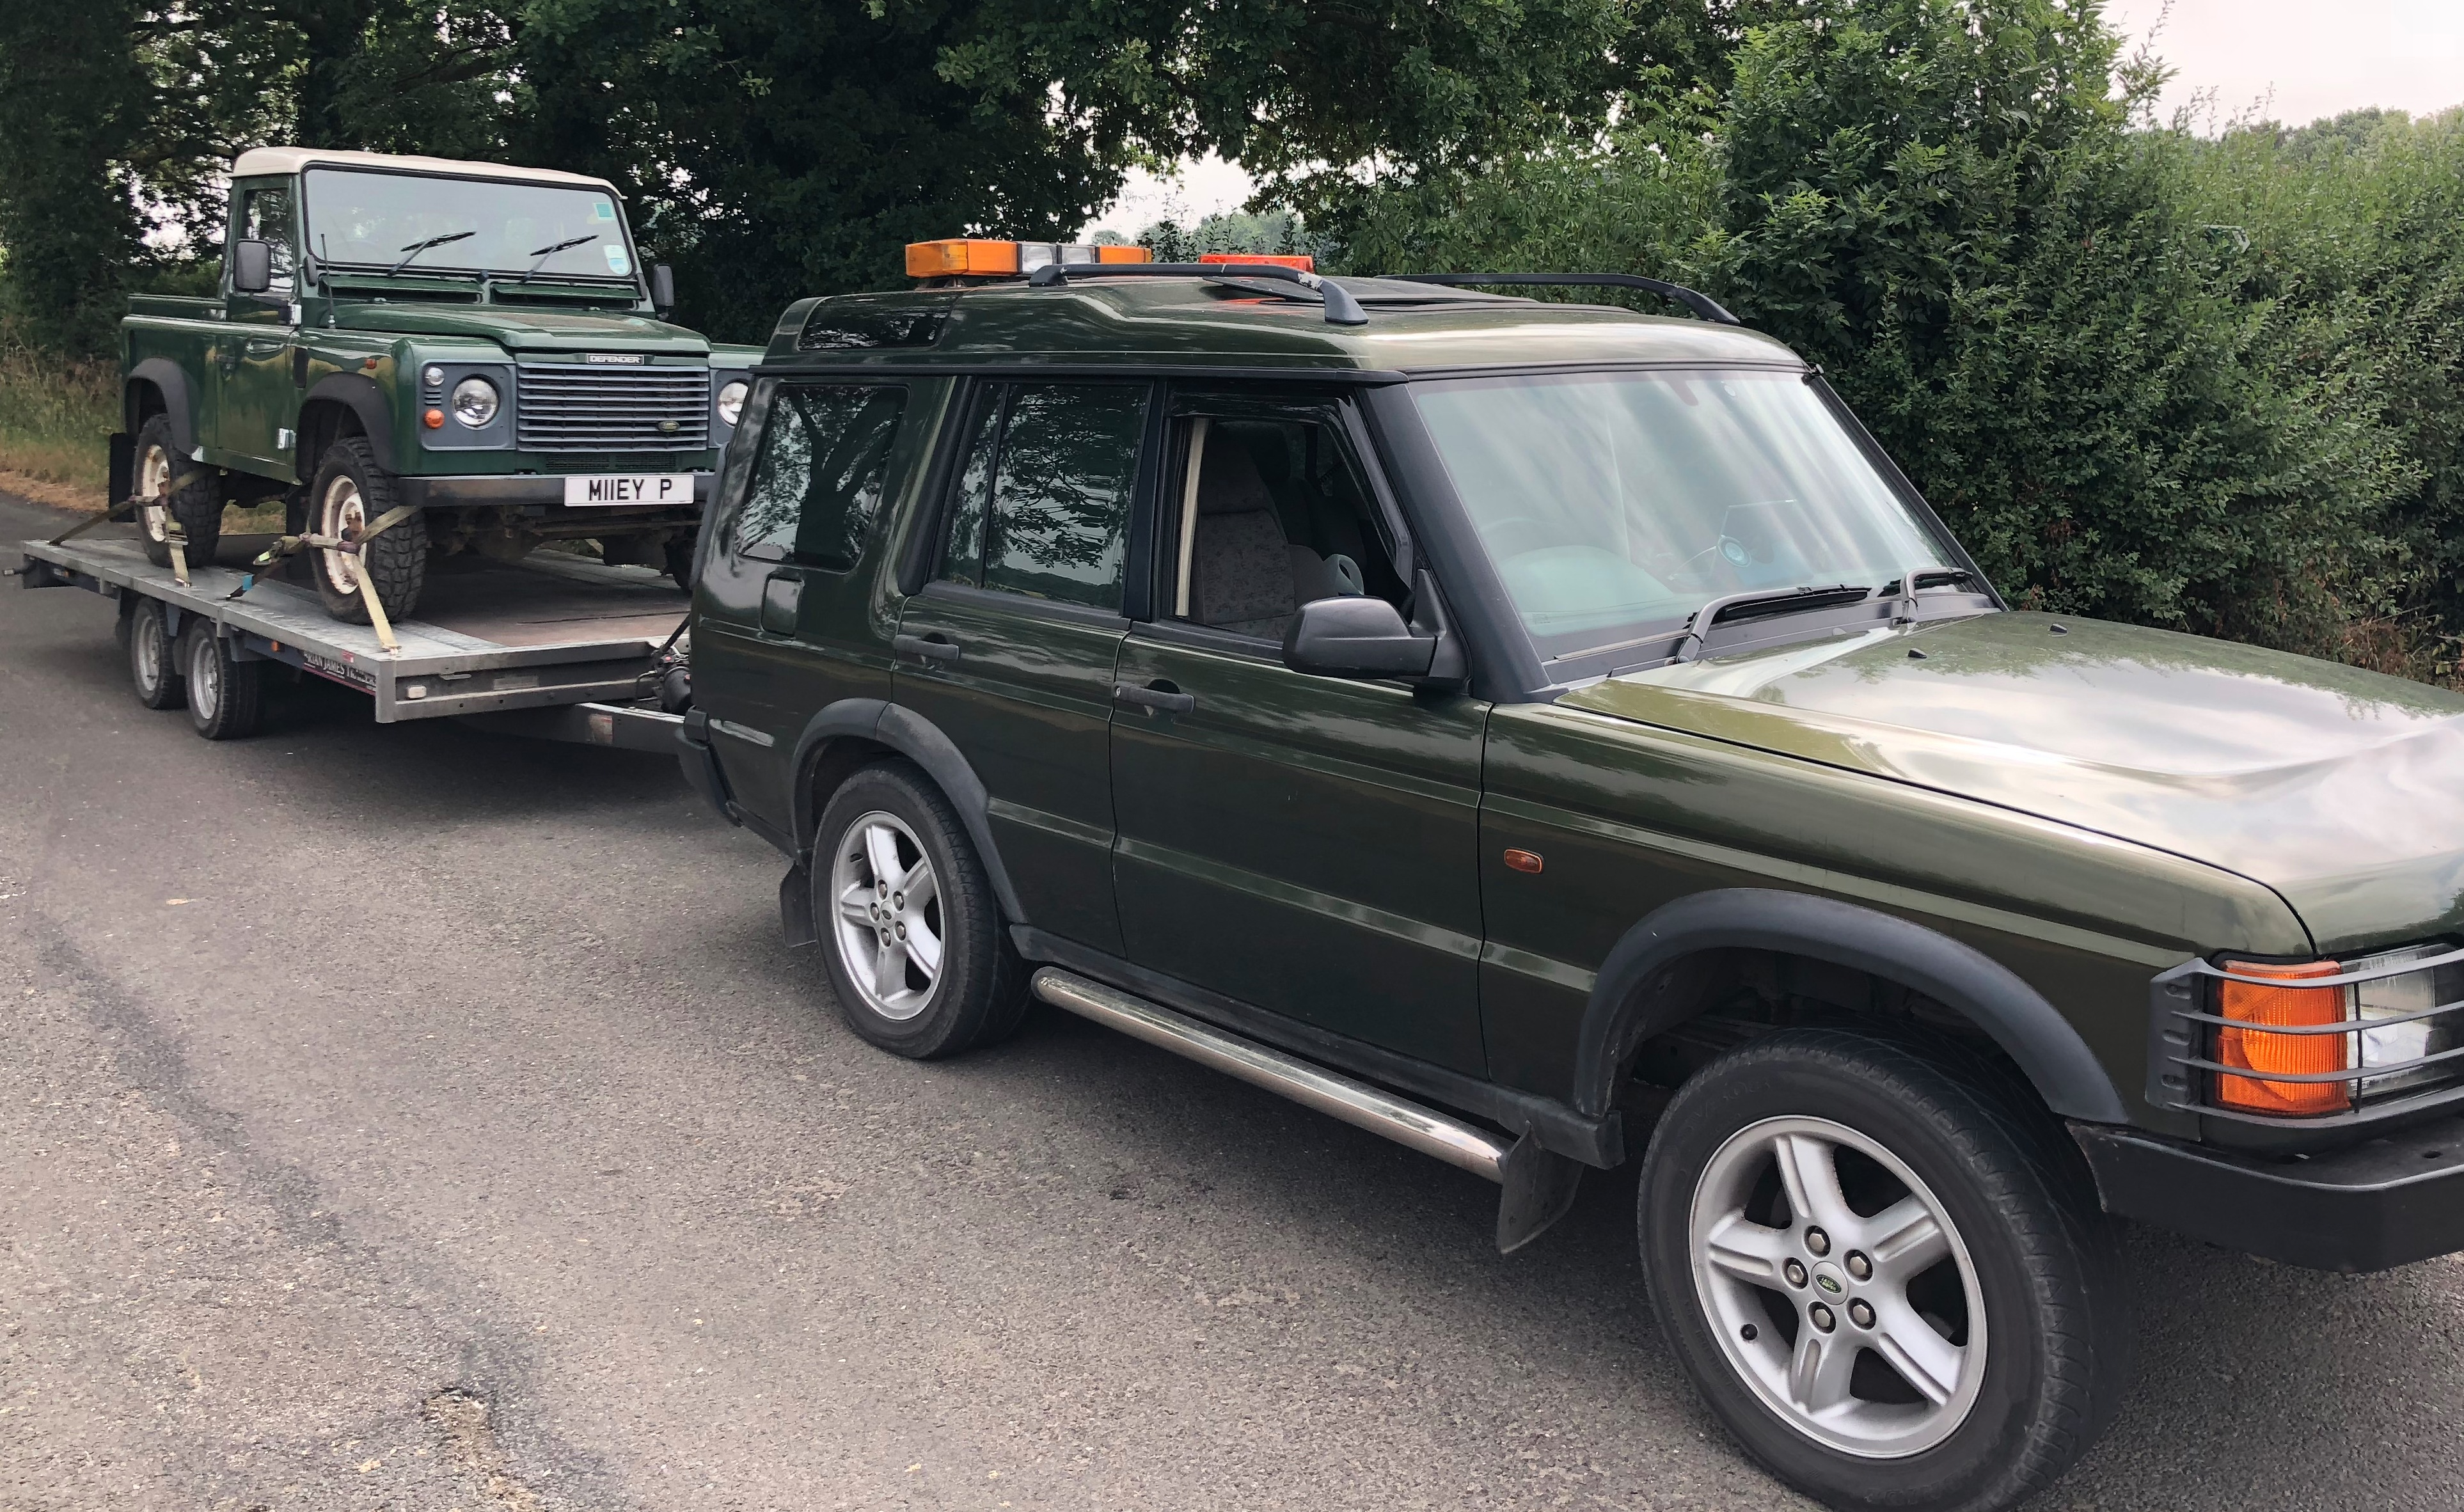 WHAT SHOULD I CHECK in a Classic Range Rover